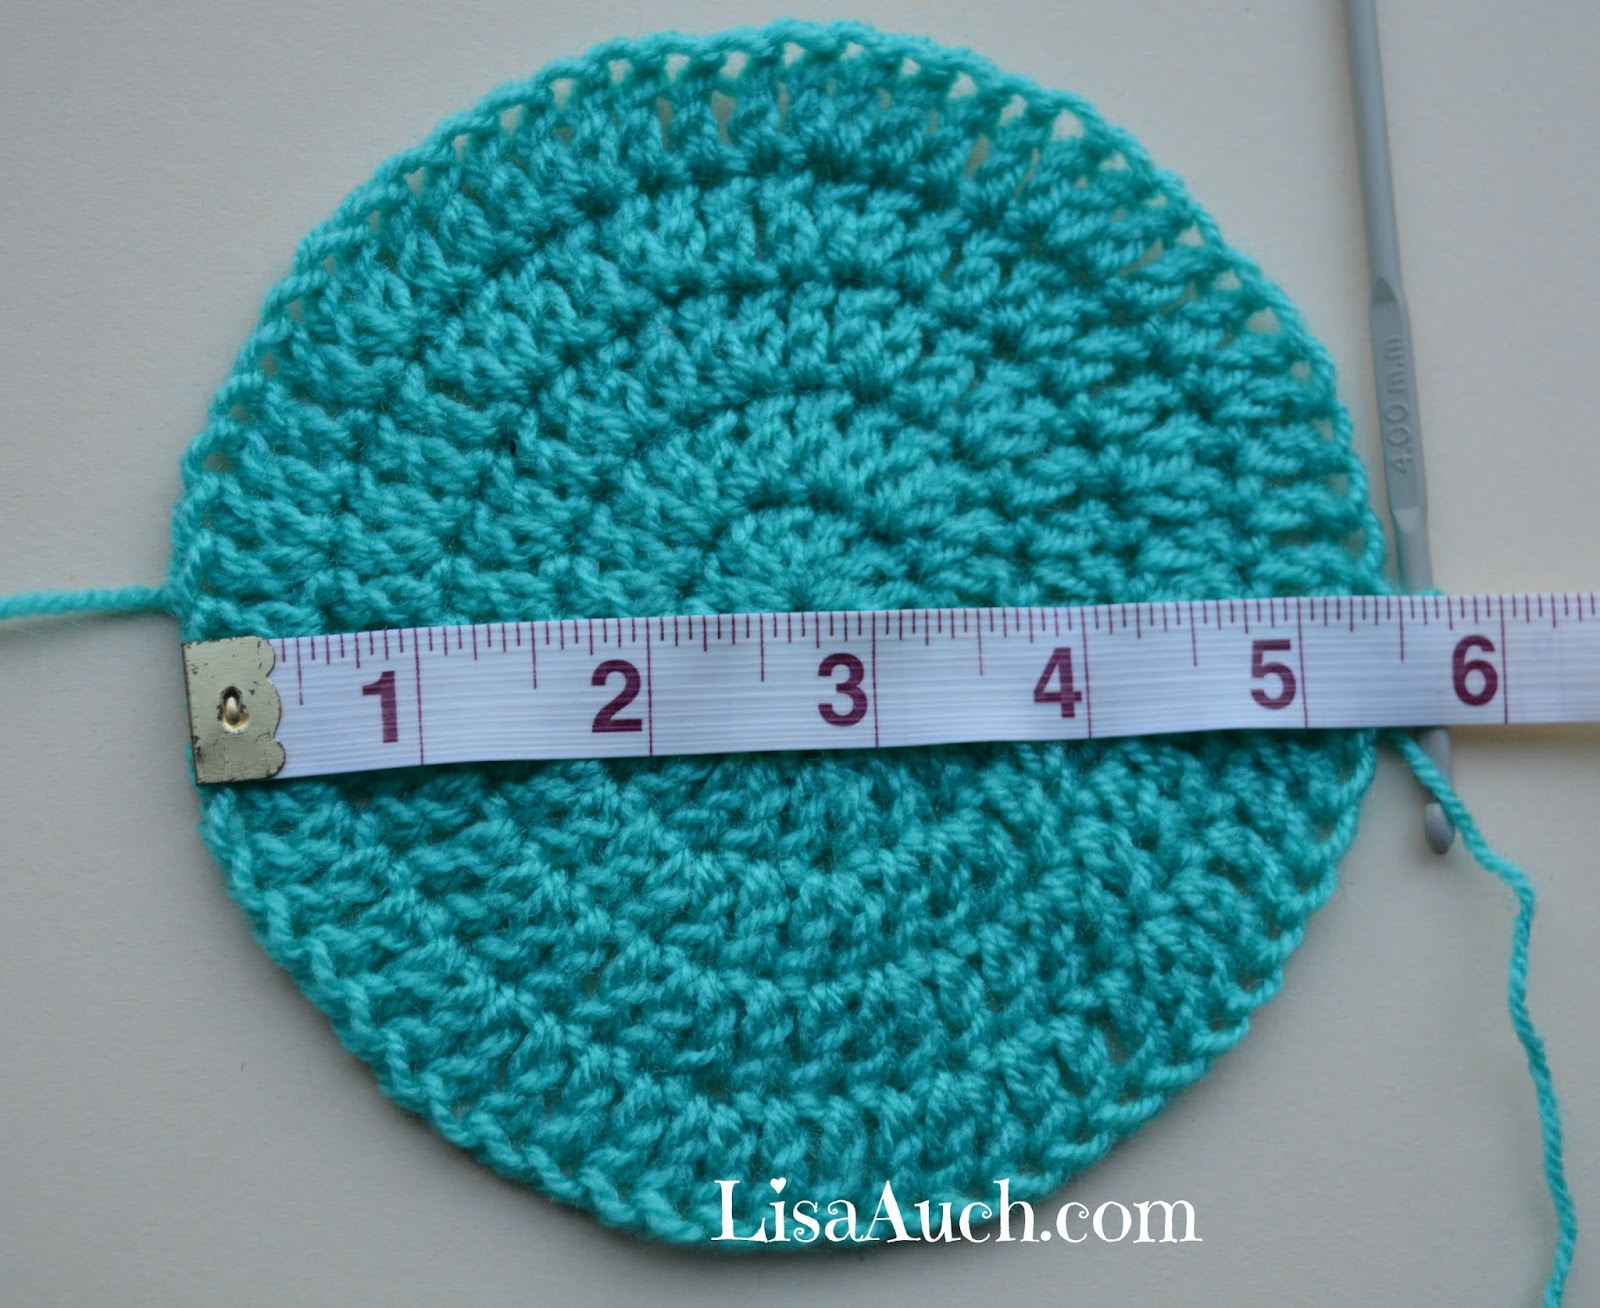 Free Crochet Pattern For A Newborn Hat : Gallery For > How To Crochet A Baby Hat